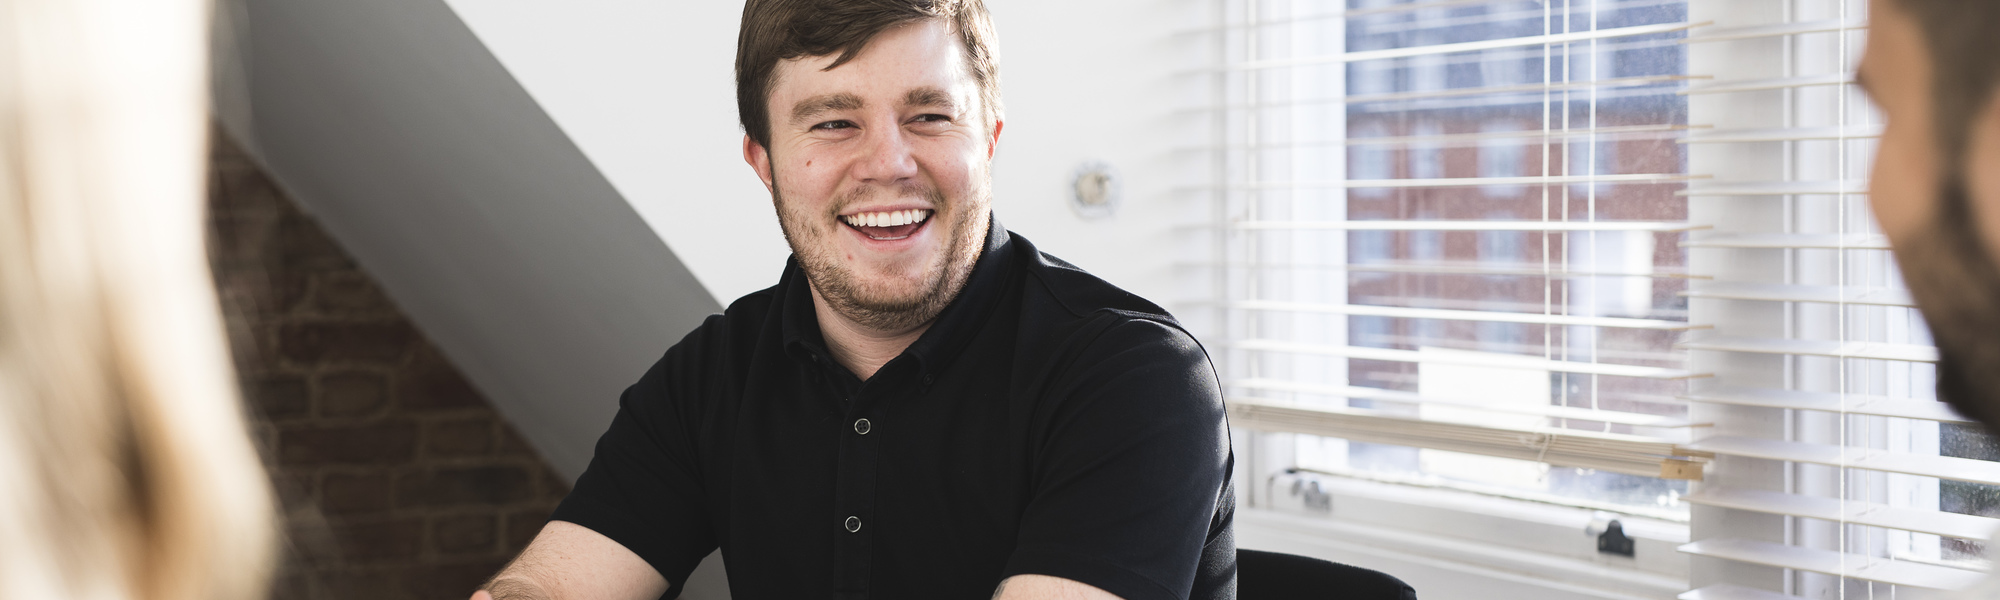 Man in black shirt laughing